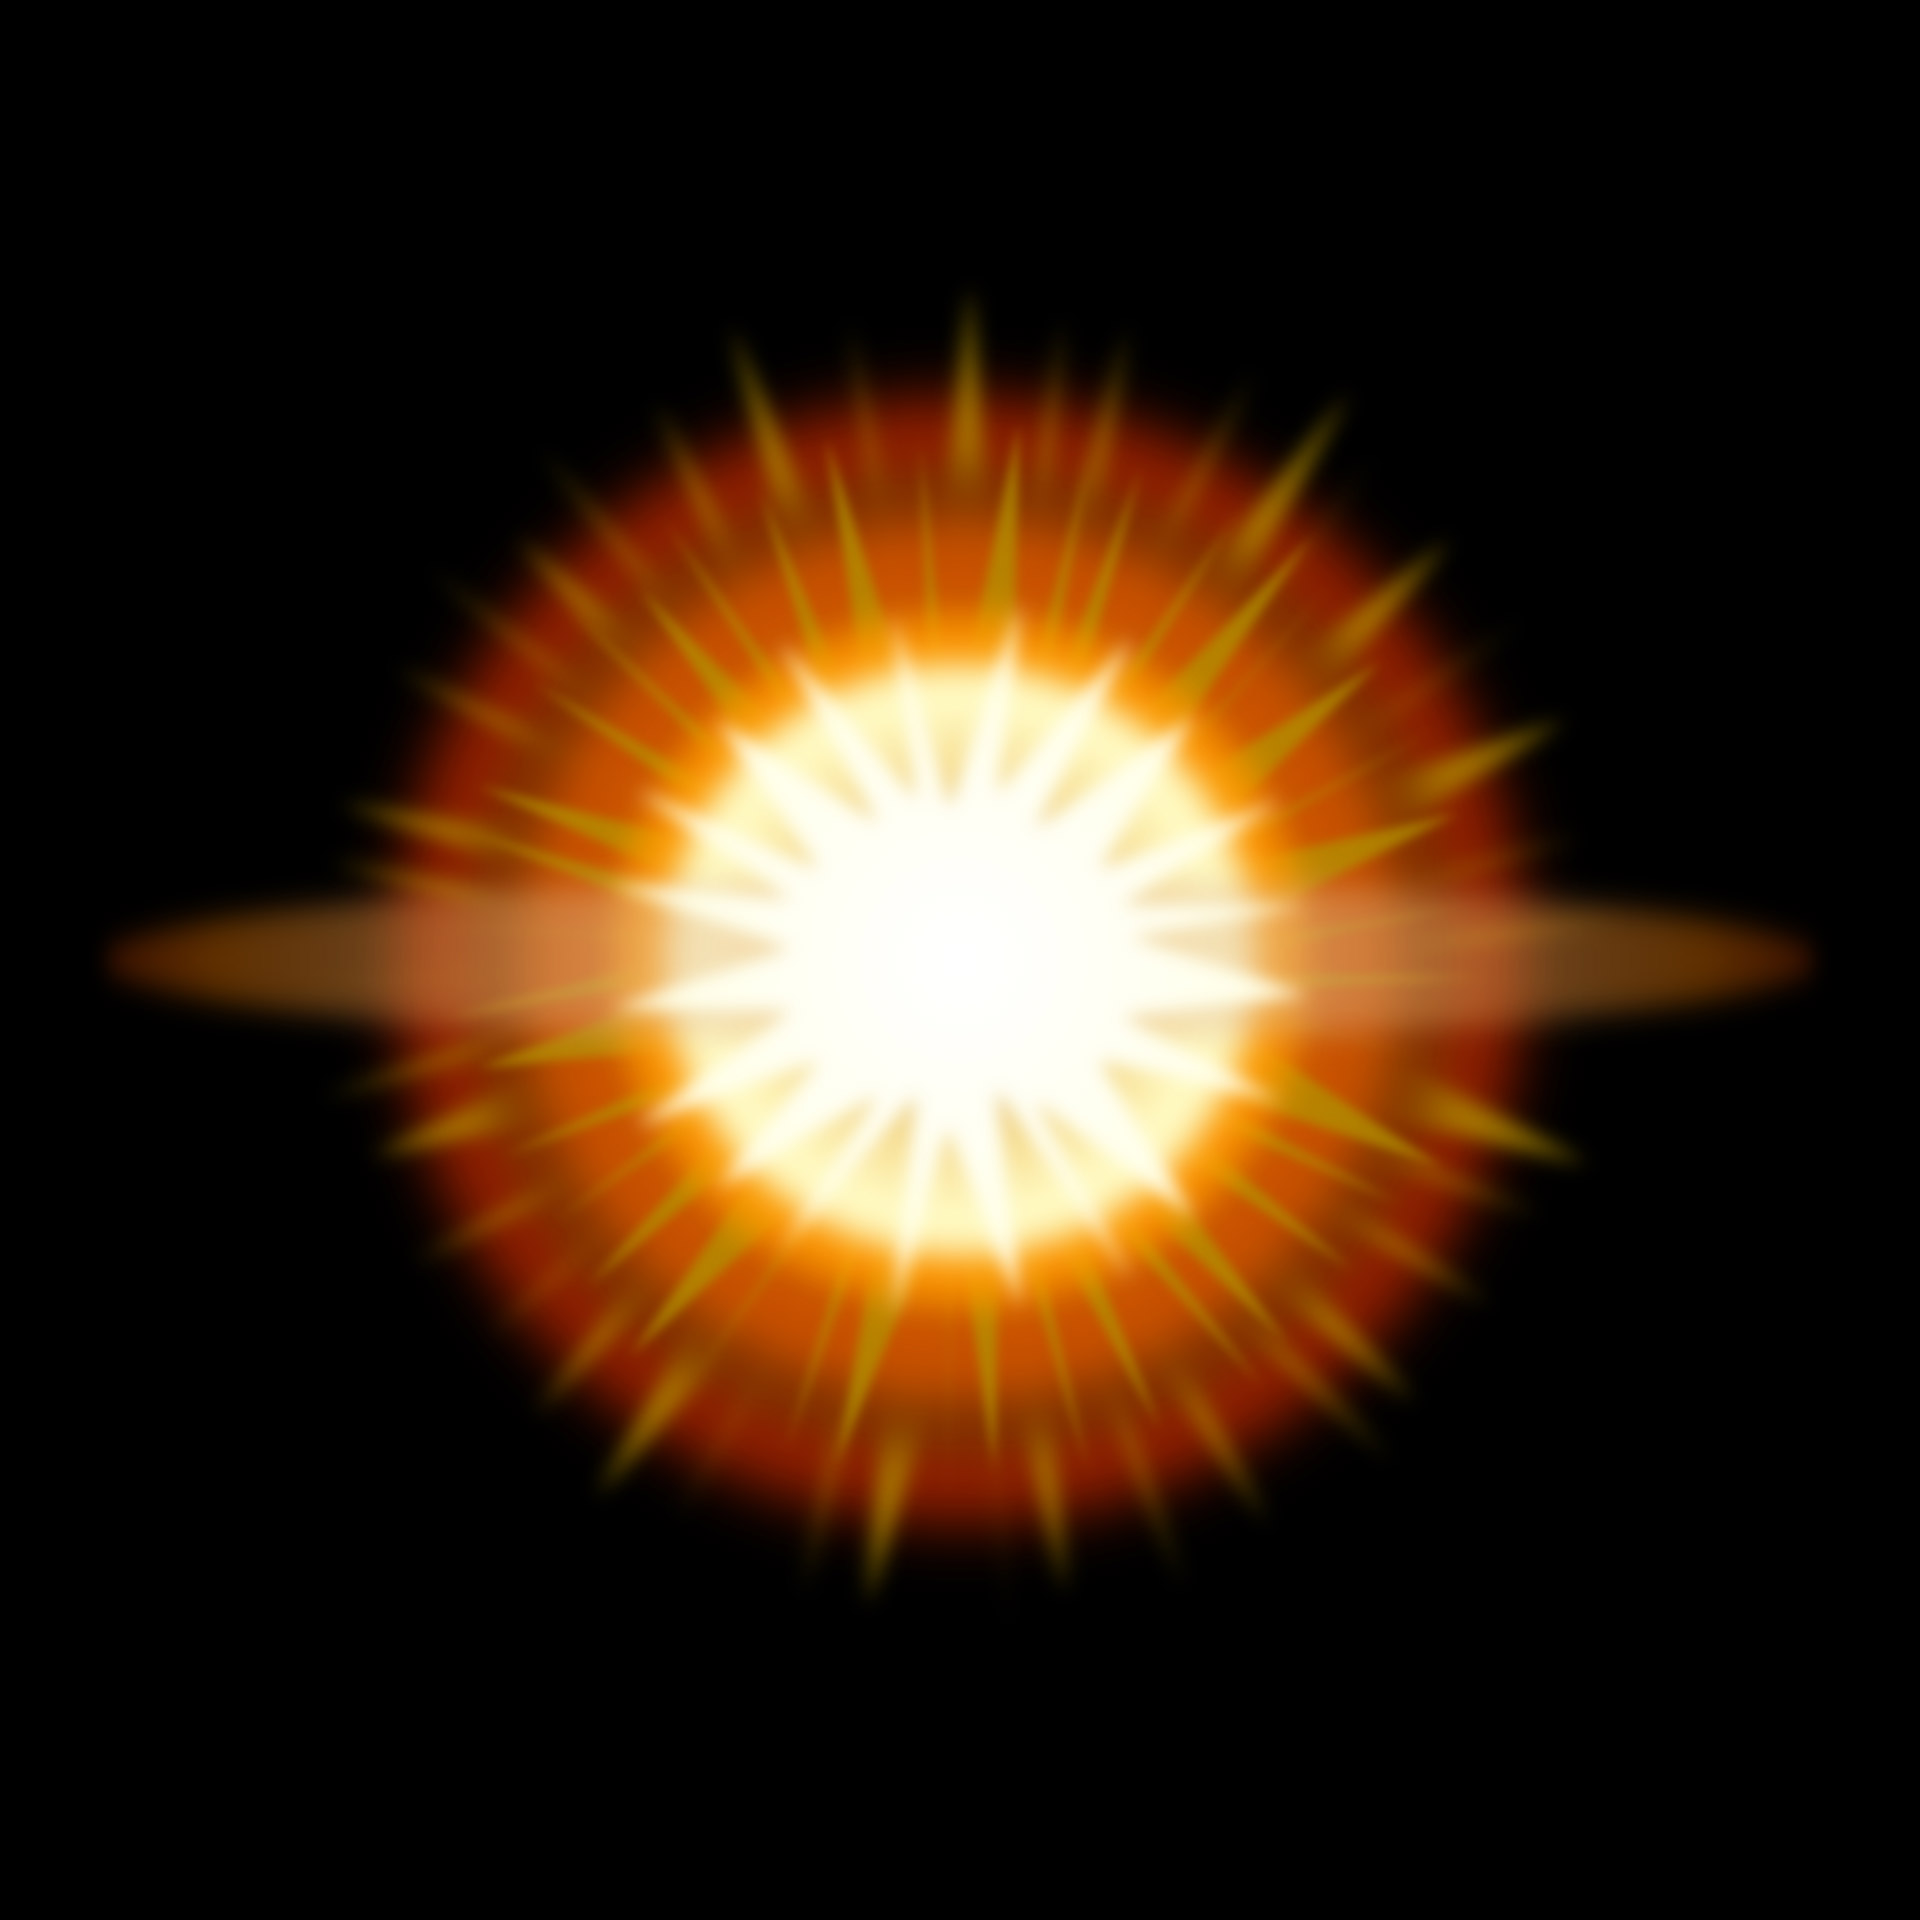 Cosmic clipart small explosion Saying never small the Illustrations